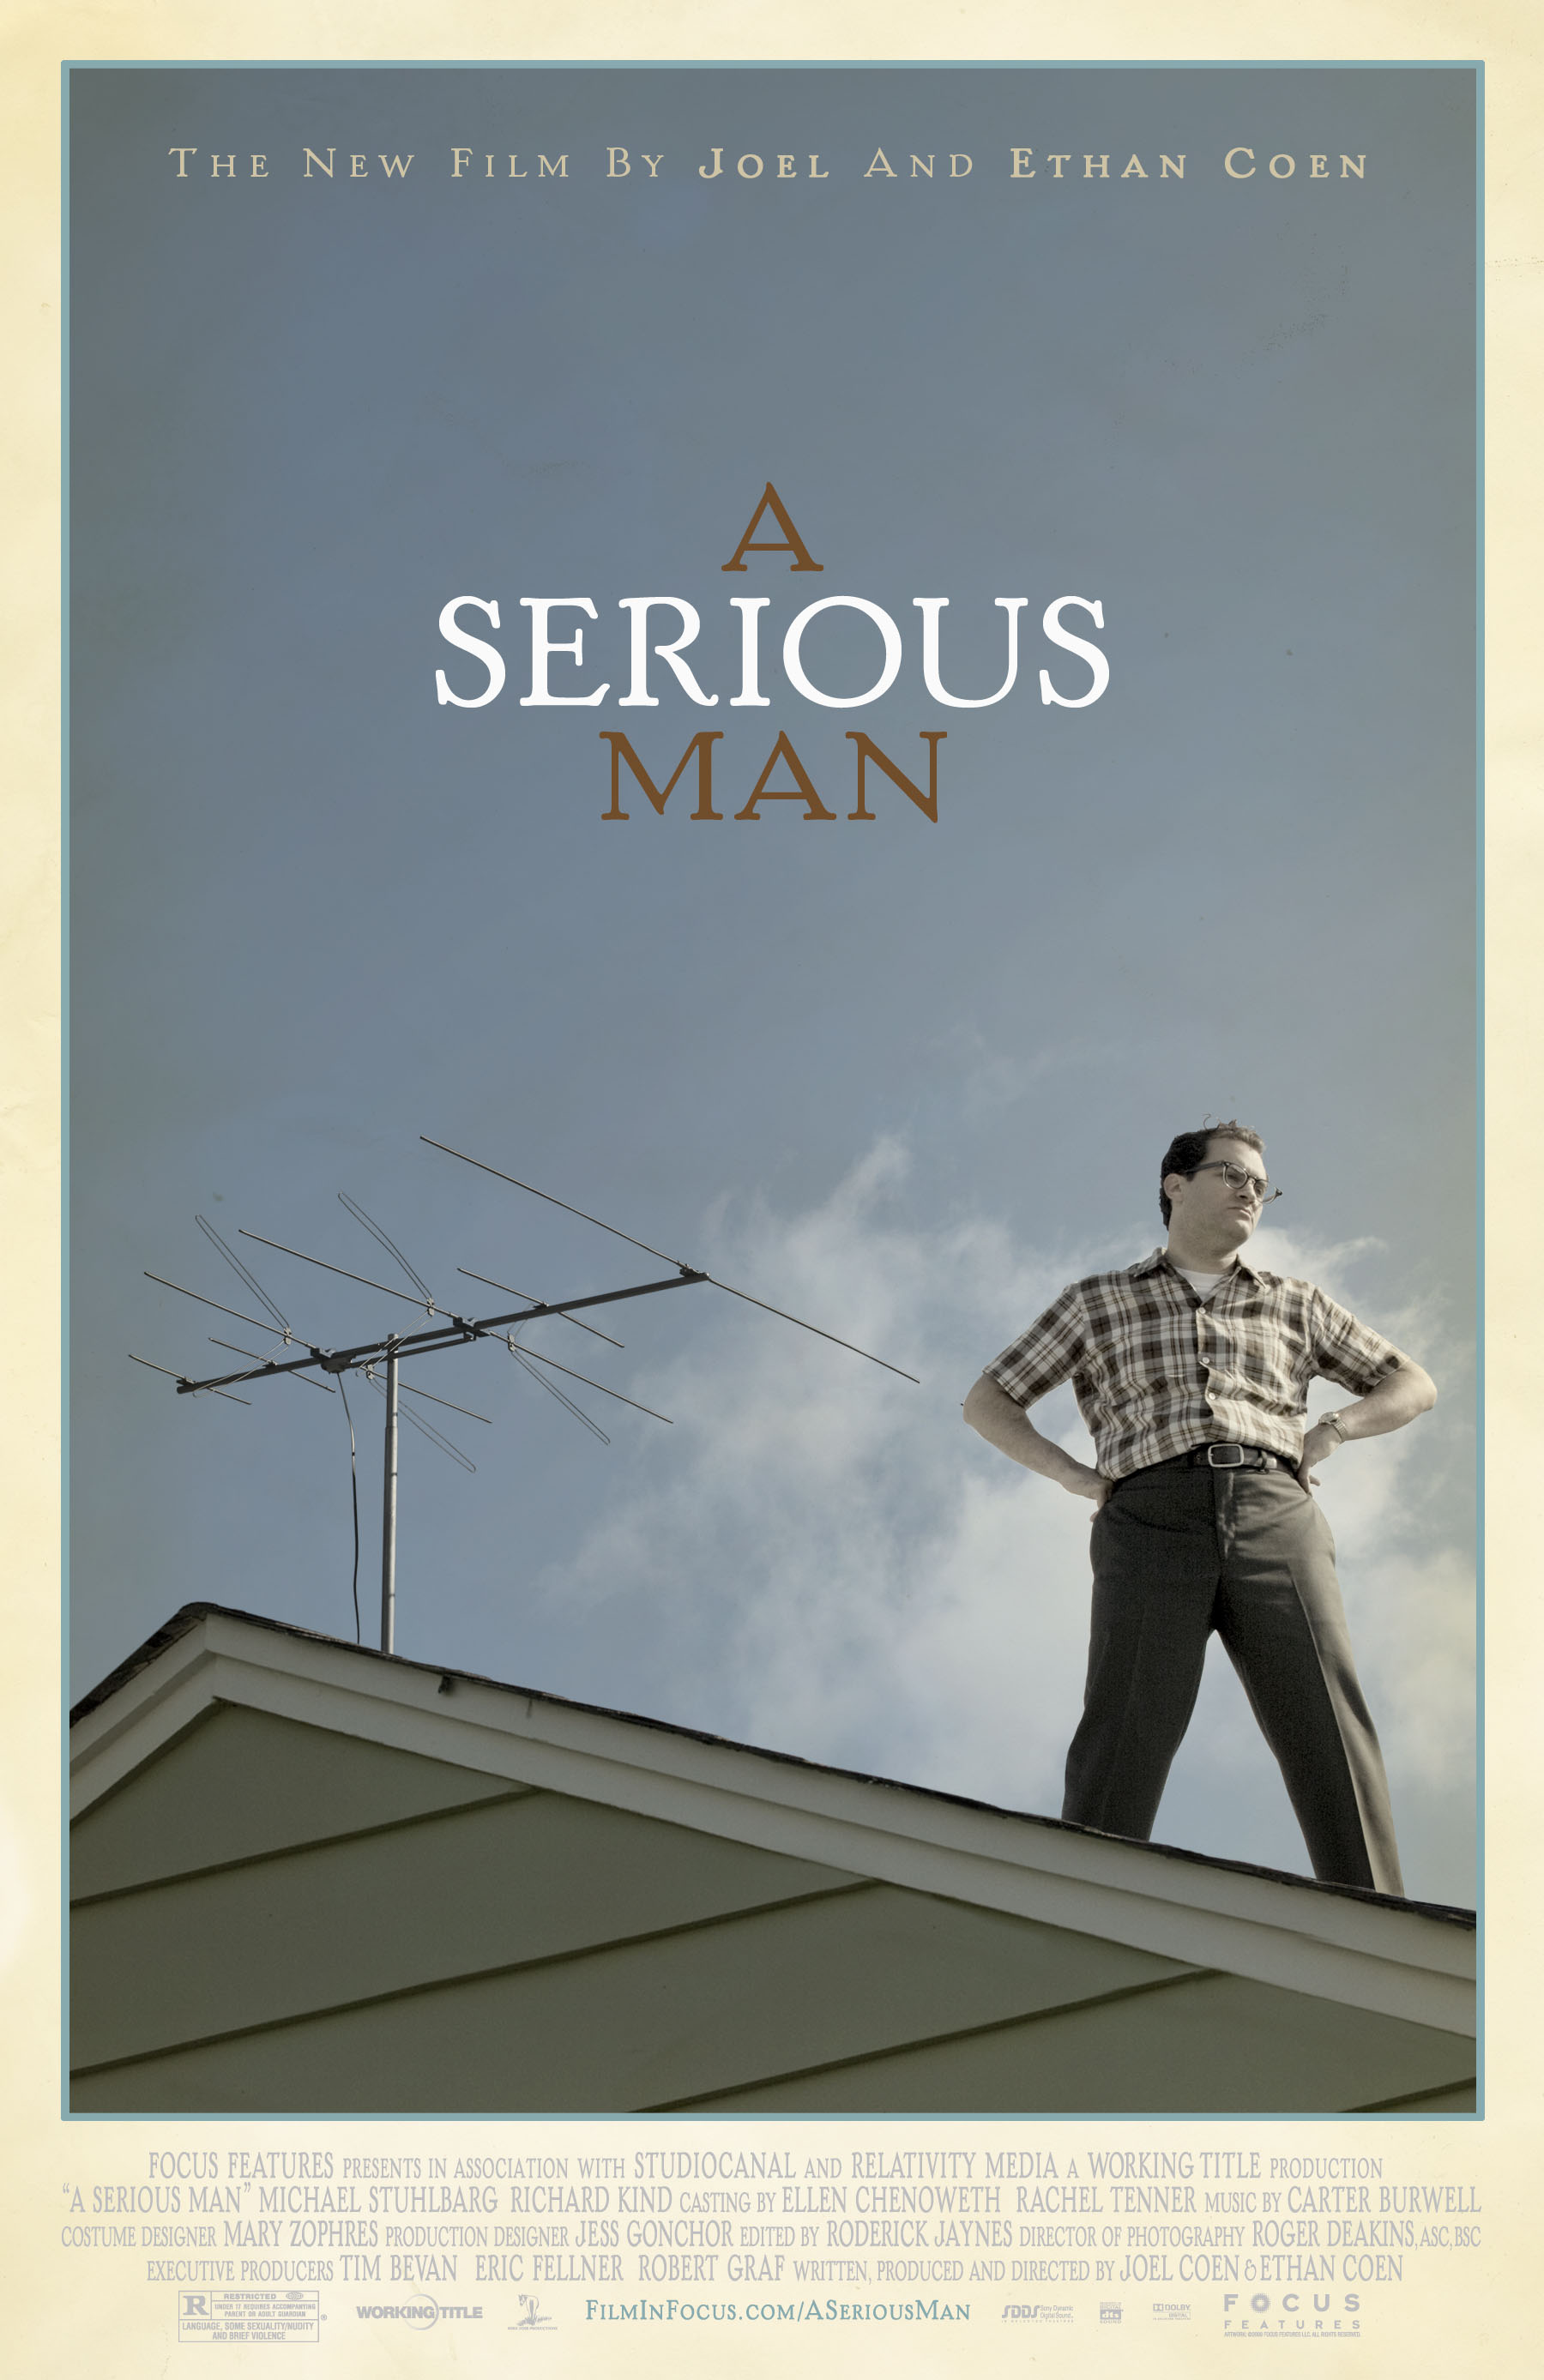 A Serious Man (2009) - Directed by: Ethan Coen, Joel CoenStarring: Michael Stuhlbarg, Richard Kind, Sari Lennick, Fred Melamed, Aaron WolffRated: R for Language, Some Sexuality/Nudity and Brief ViolenceRunning Time: 1 h 46 mTMM Score: 5 stars out of 5STRENGTHS: Acting, Writing, Directing, Themes, EndingWEAKNESSES:-